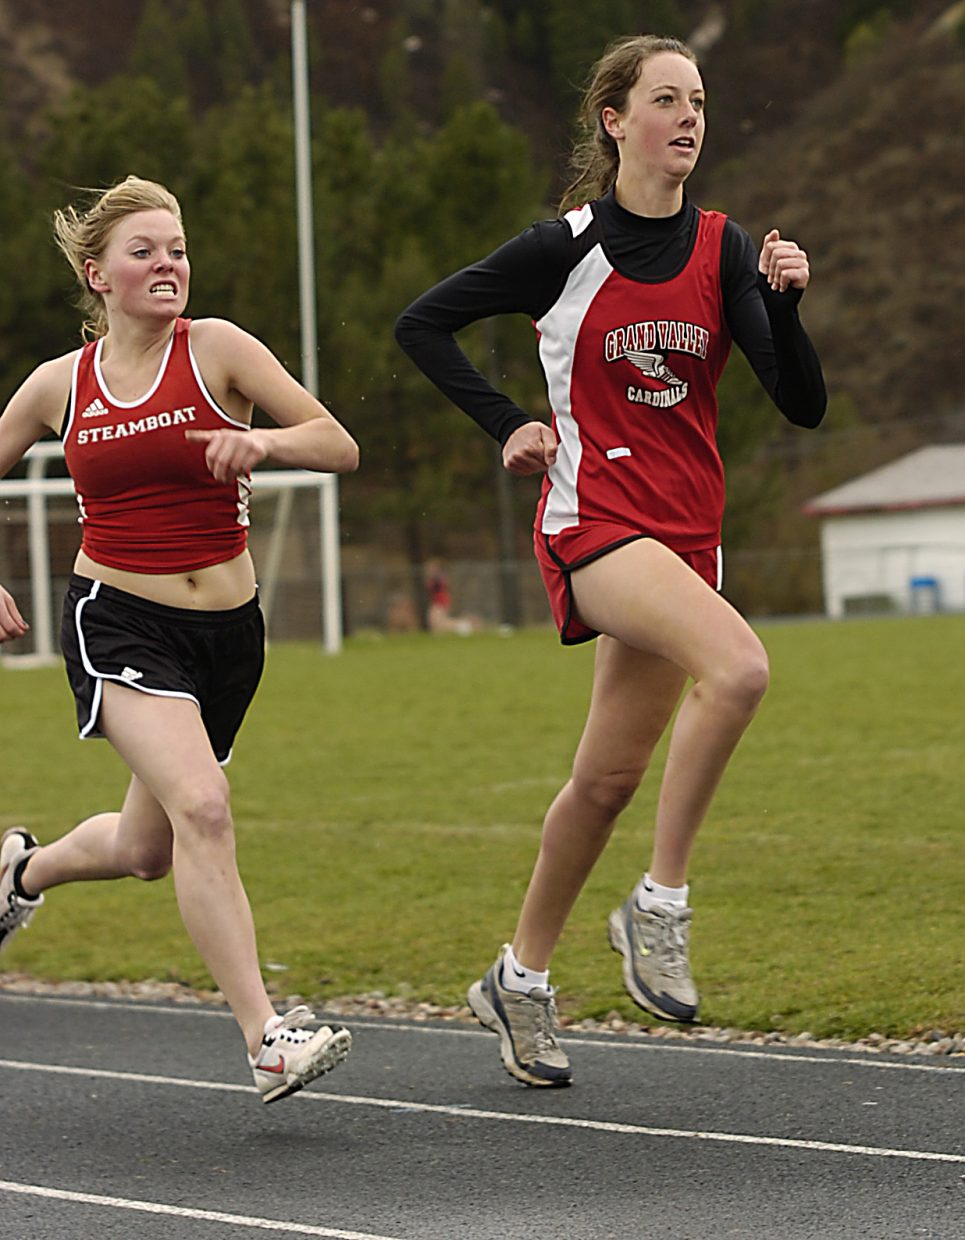 Steamboat High School's Jorid Halsnes tries to charge past a Grand Valley runner as she heads down the final stretch of the 800-meter run Saturday at the Demon Invitational track meet in Glenwood Springs.